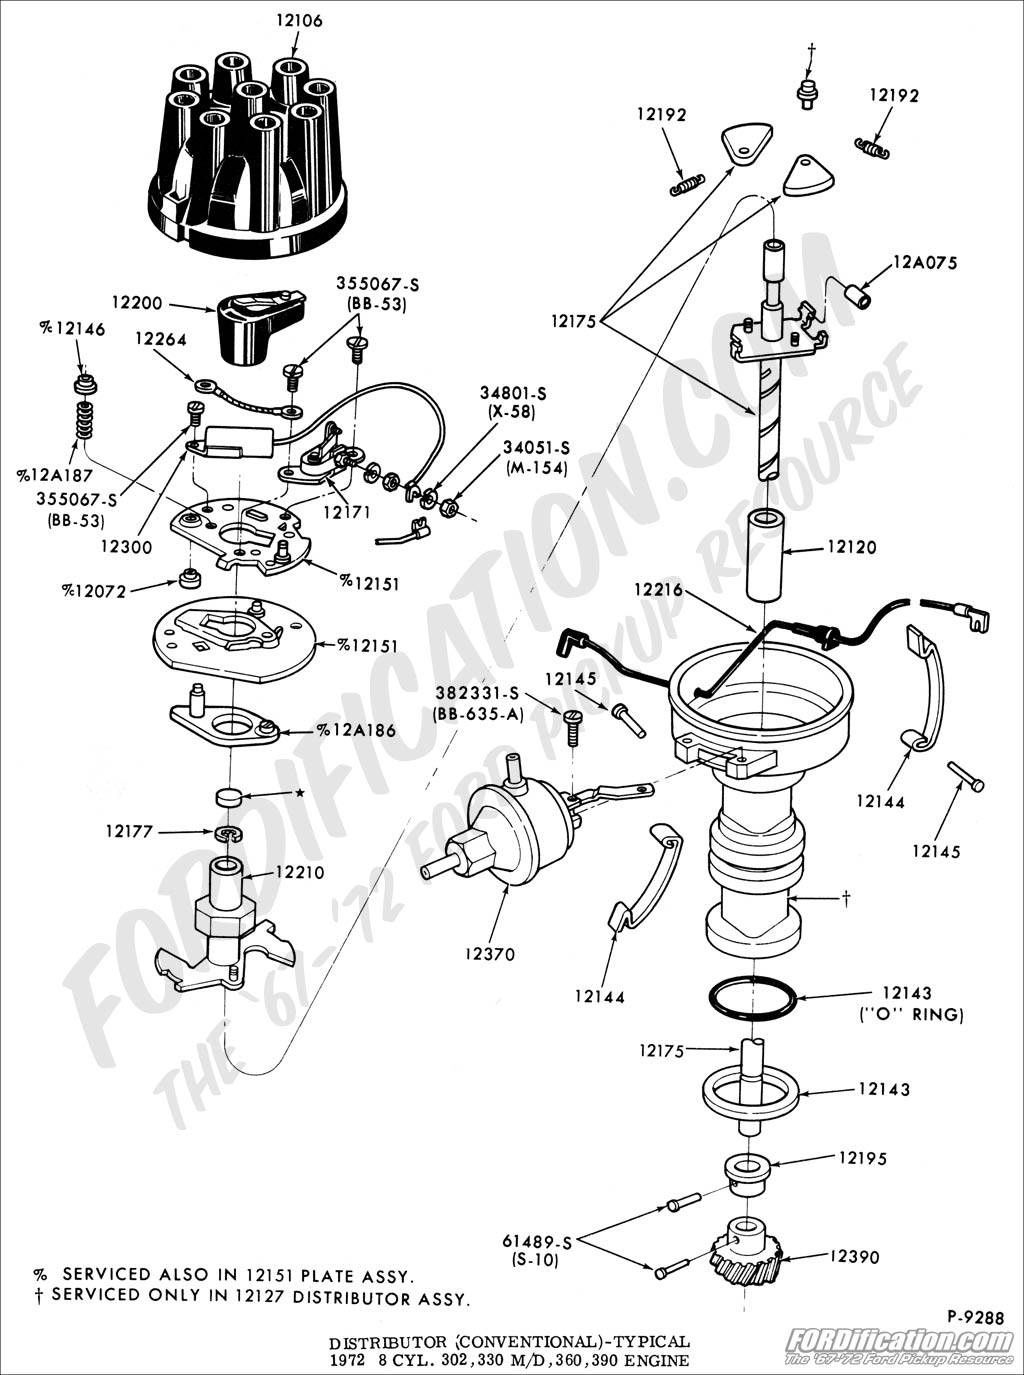 Wiring Diagram For 1989 Ford F150 302, Wiring, Get Free